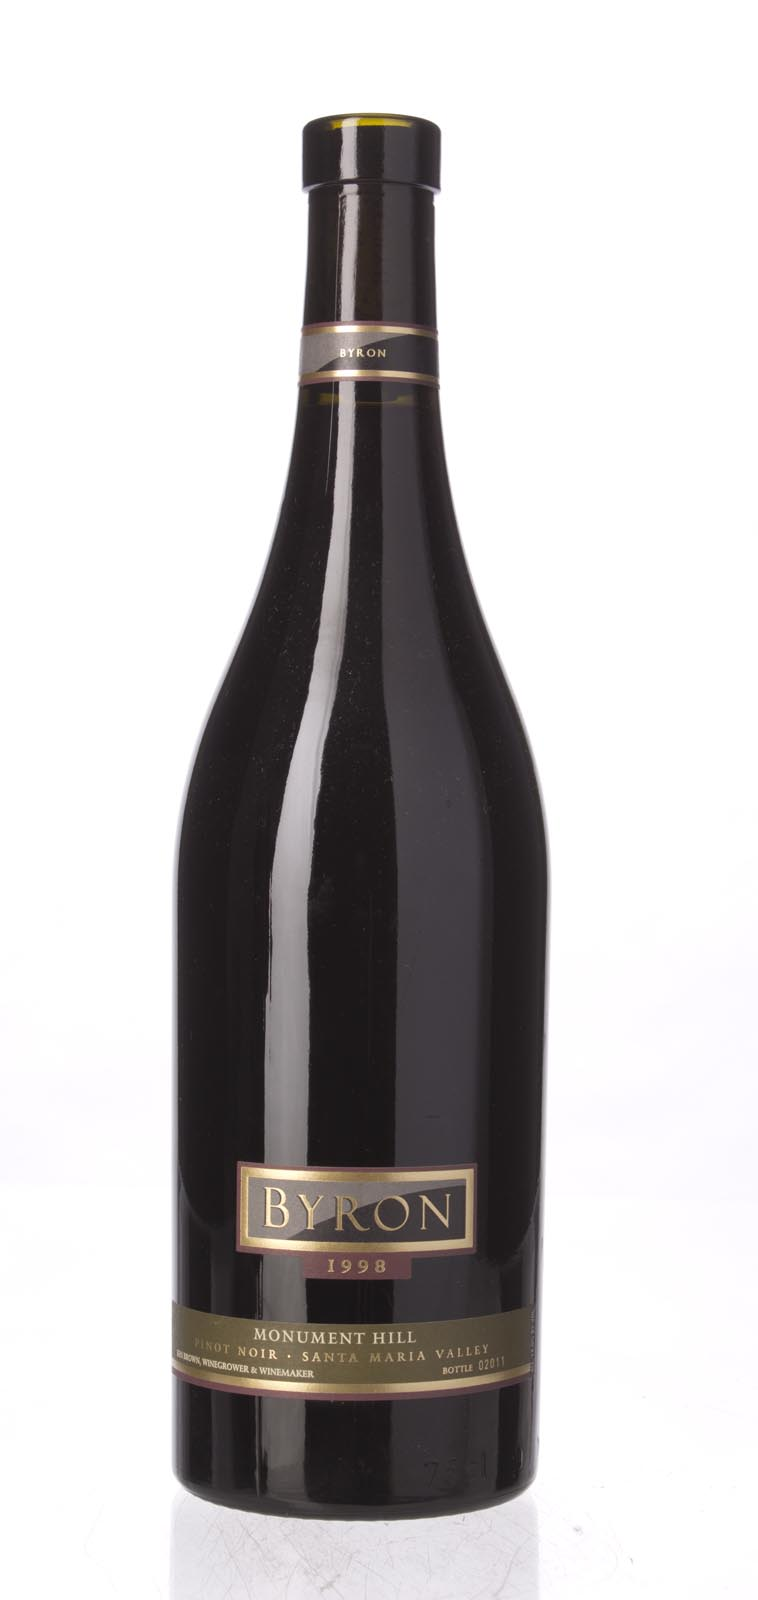 Byron Pinot Noir Monument Hill 1998, 750mL () from The BPW - Merchants of rare and fine wines.